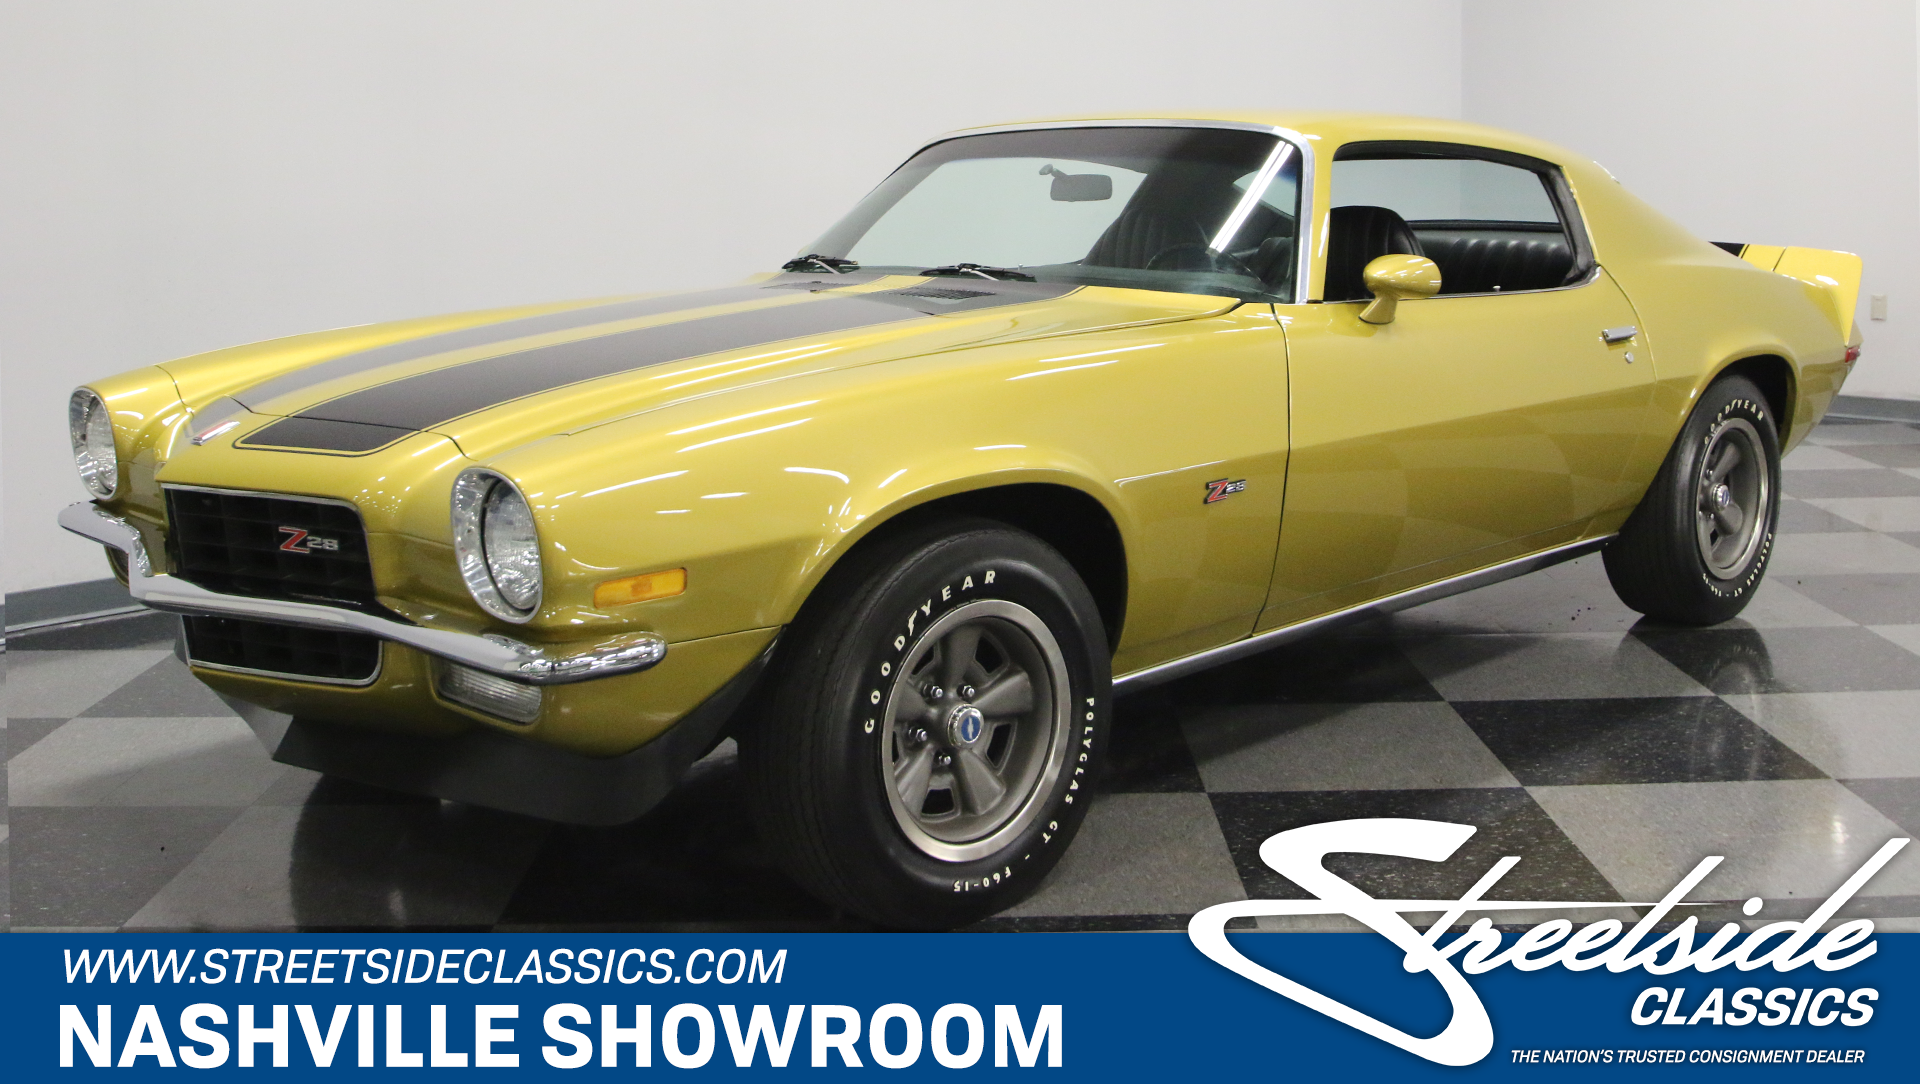 1972 Chevrolet Camaro Streetside Classics The Nation S Trusted Classic Car Consignment Dealer